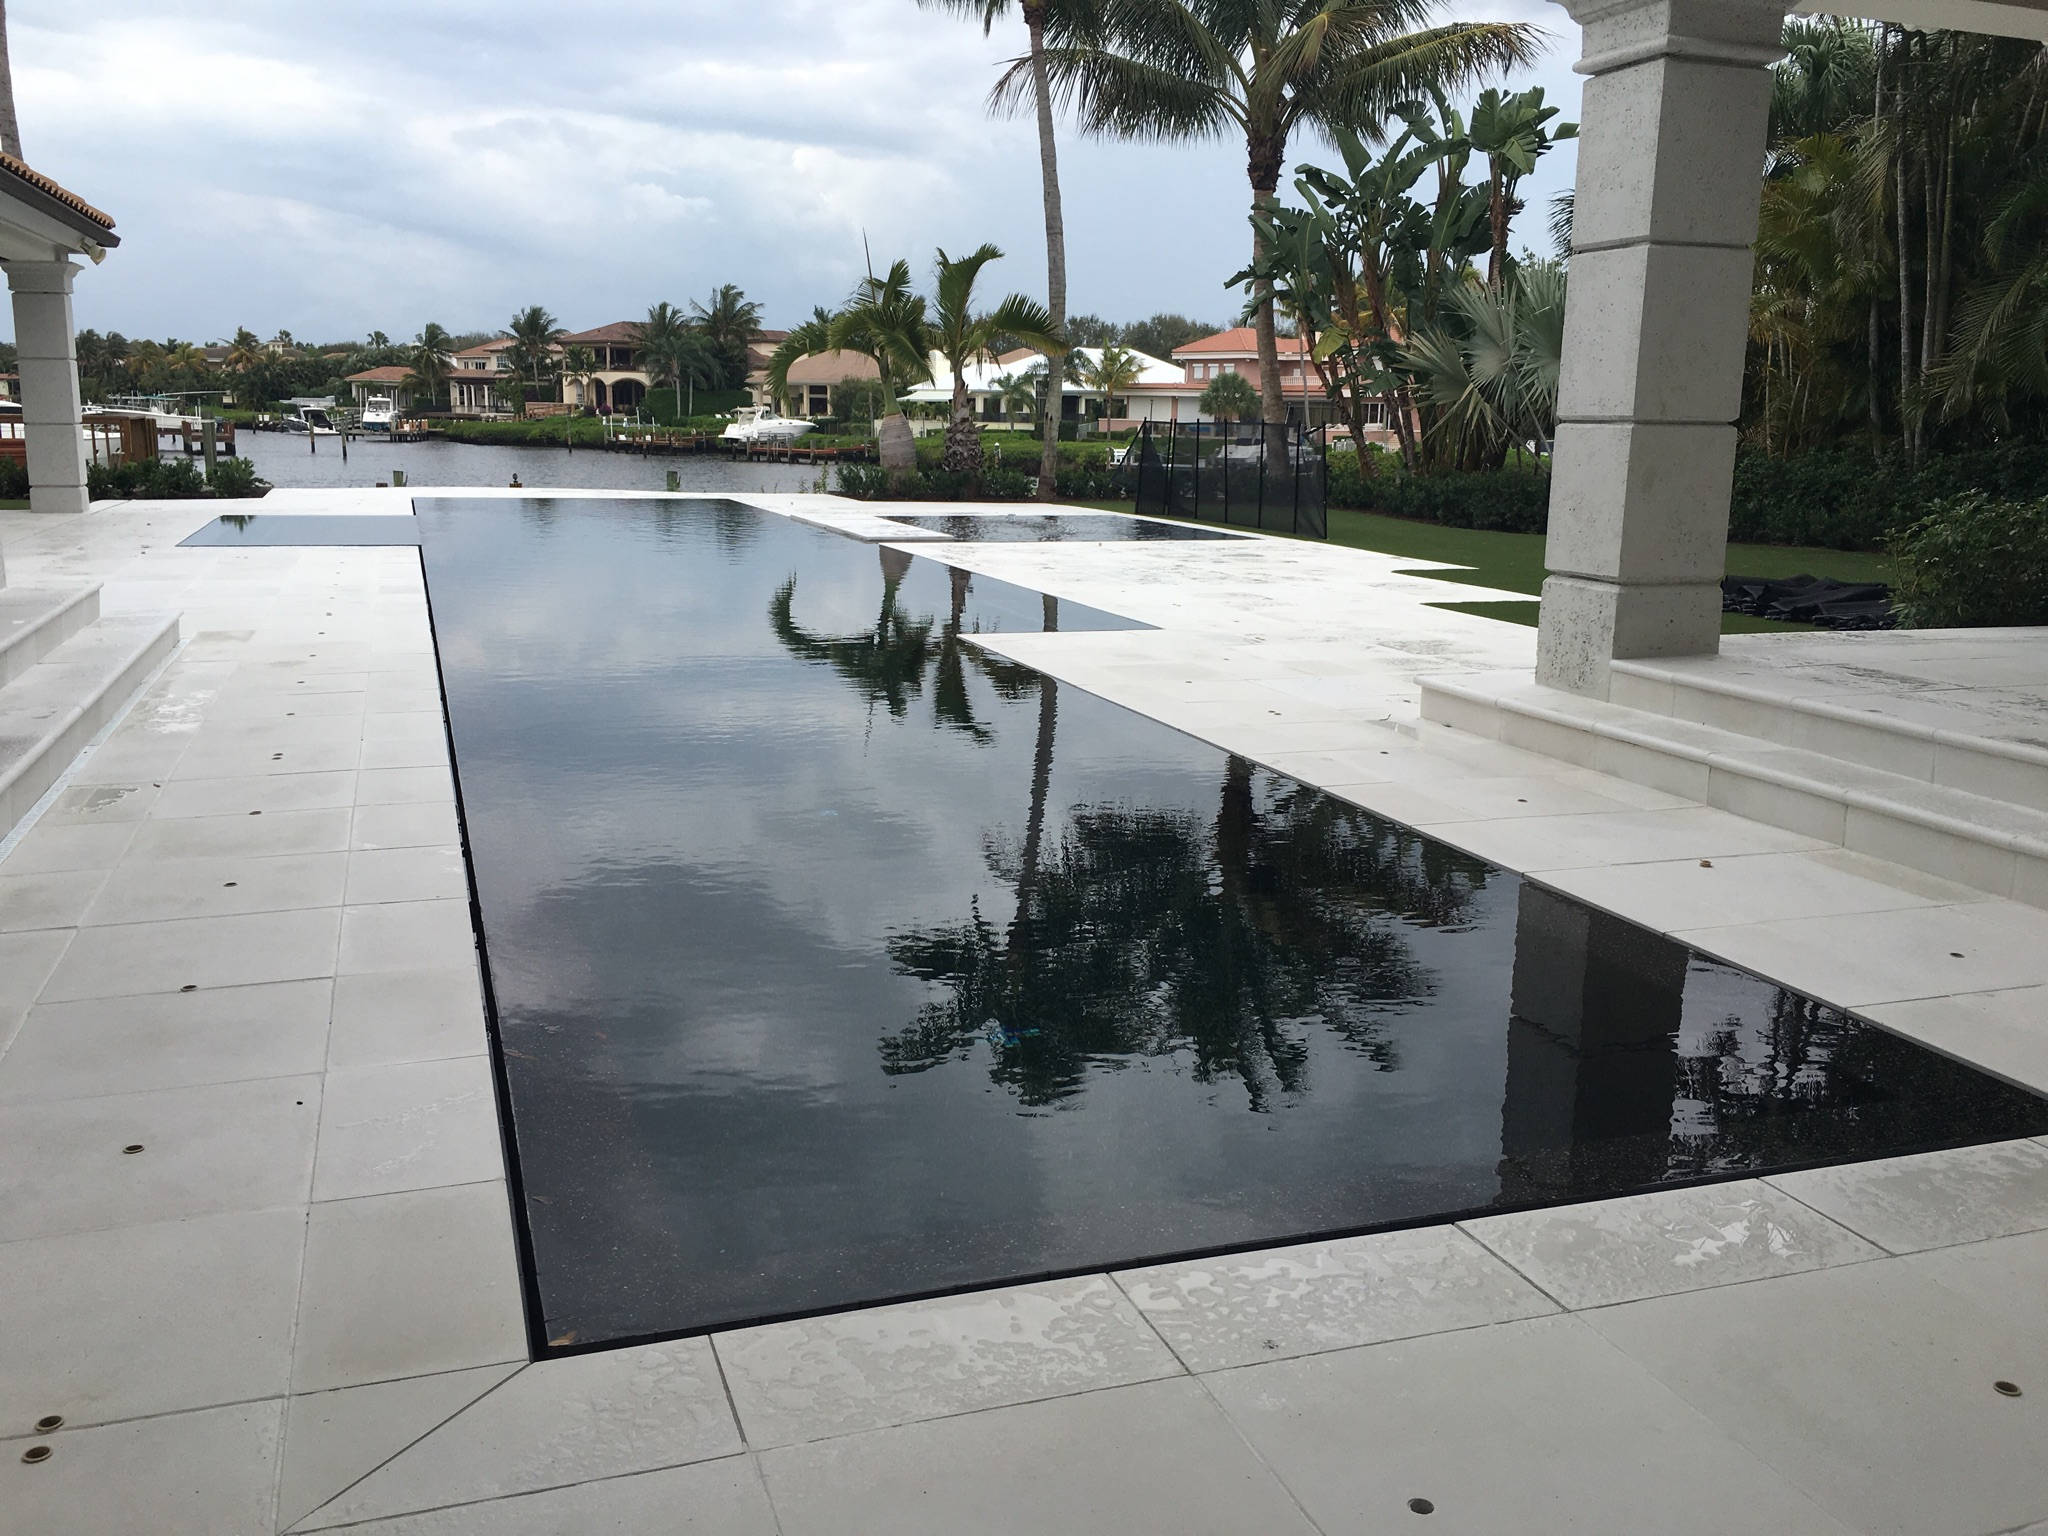 rhr pools of jupiter fl modern pool with dark interior and infinity edge overlooking the water